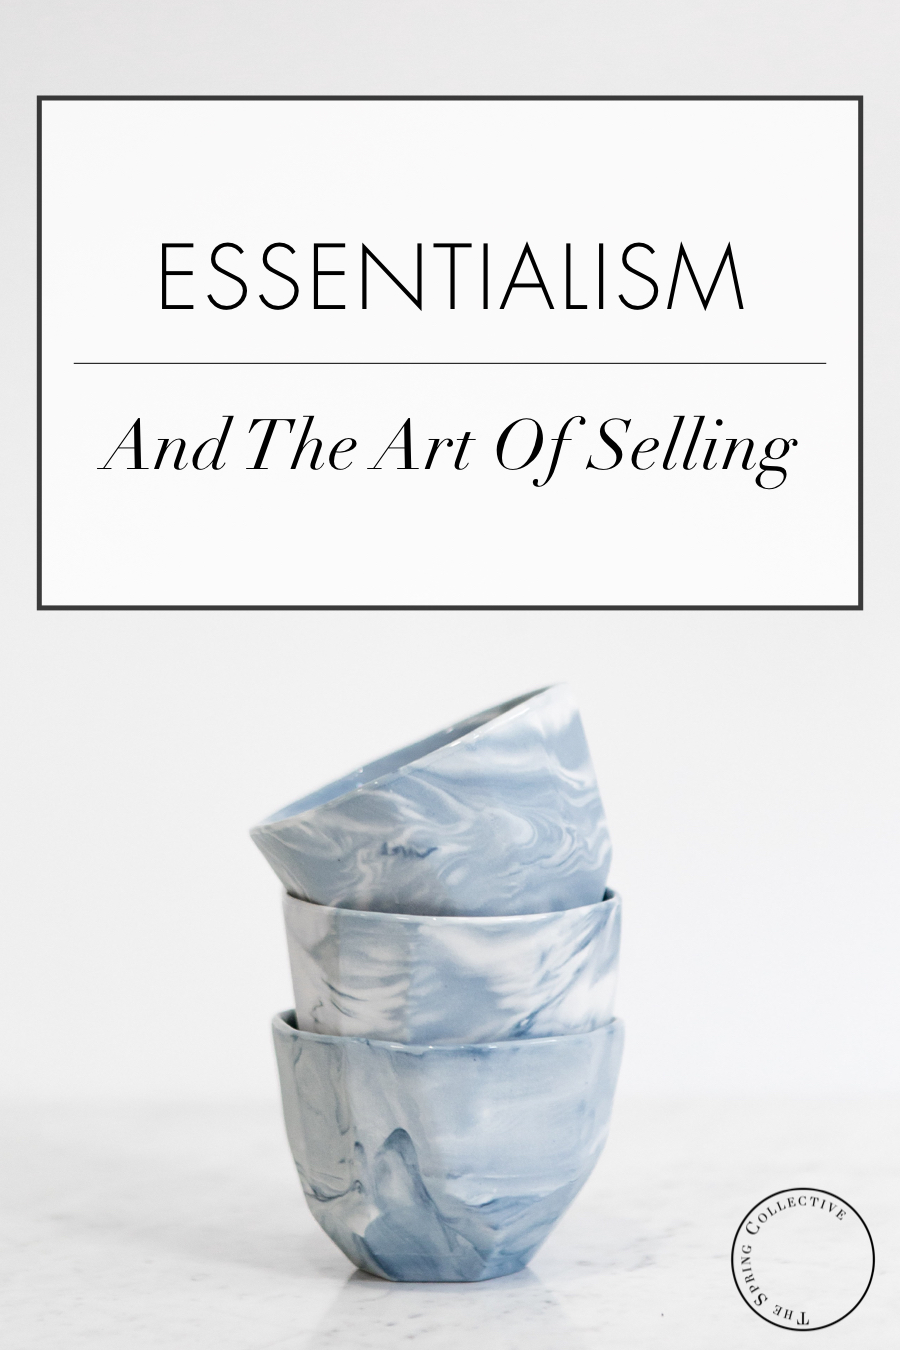 essentialism_and_the_art_of_selling.jpg